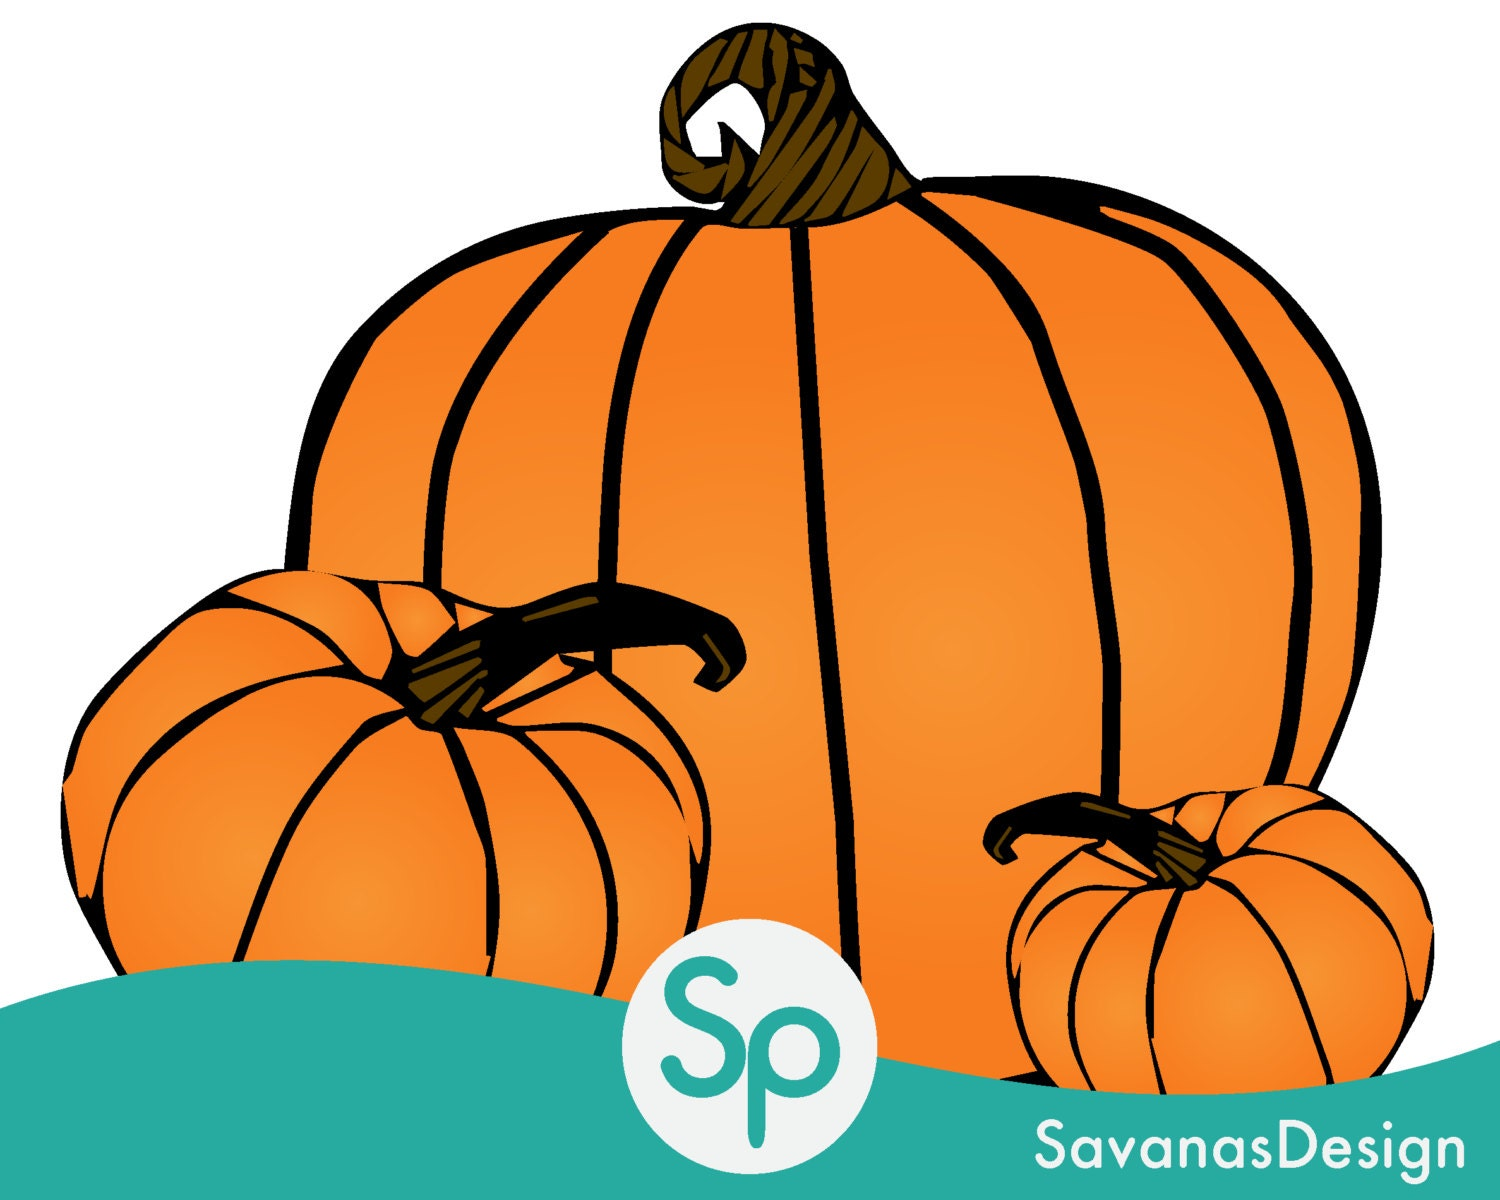 Pumpkin Clip Art Pumpkin Vector Pumpkin Decorating Pumpkin